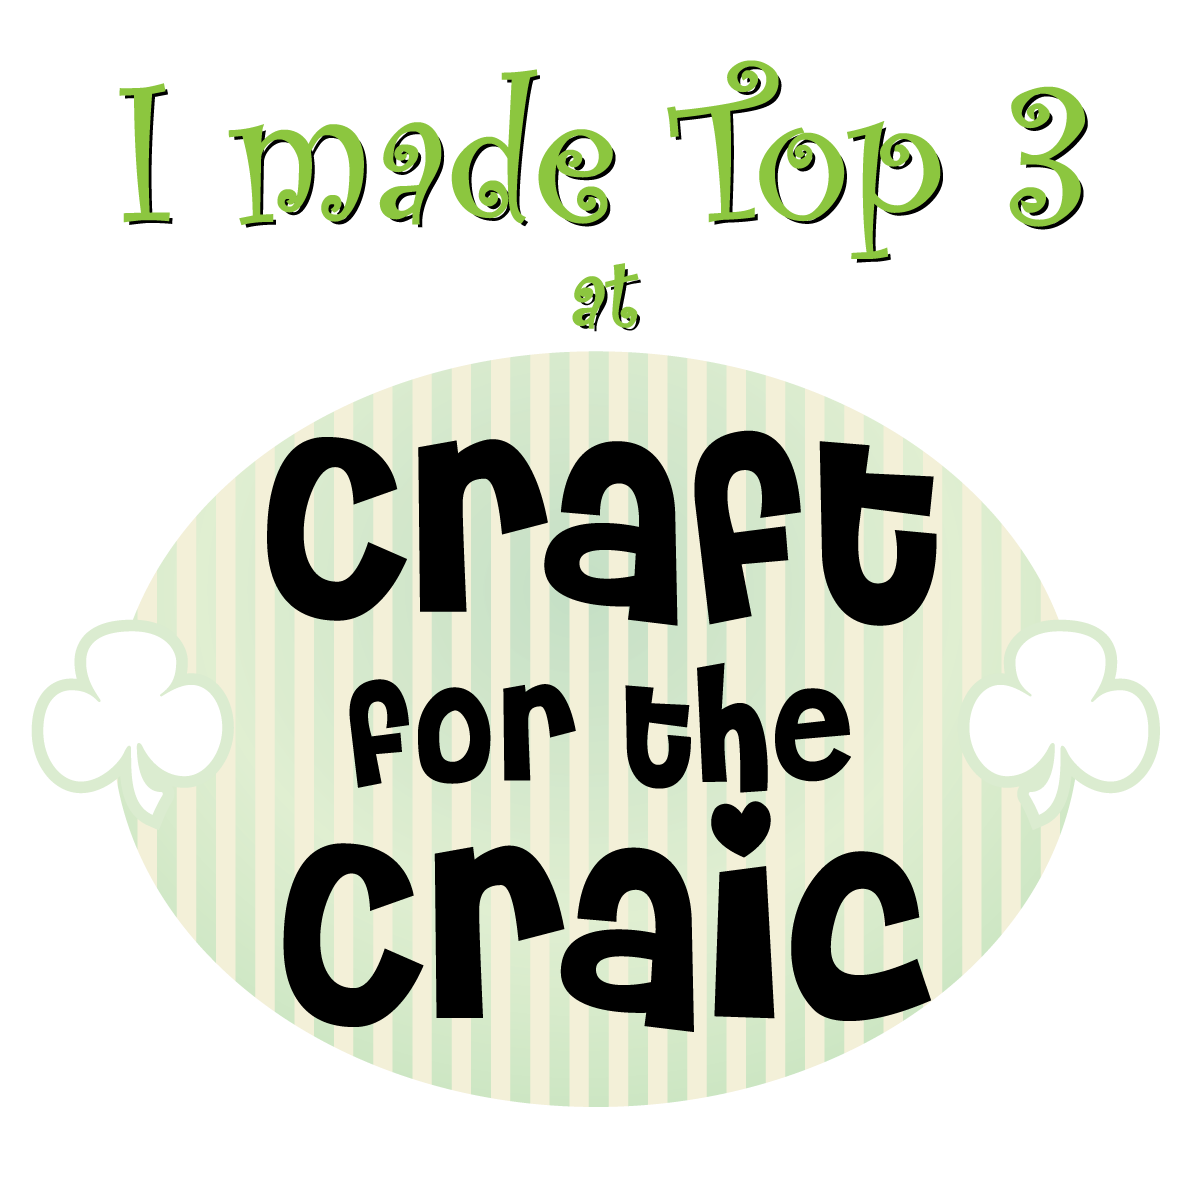 Craft for Craic